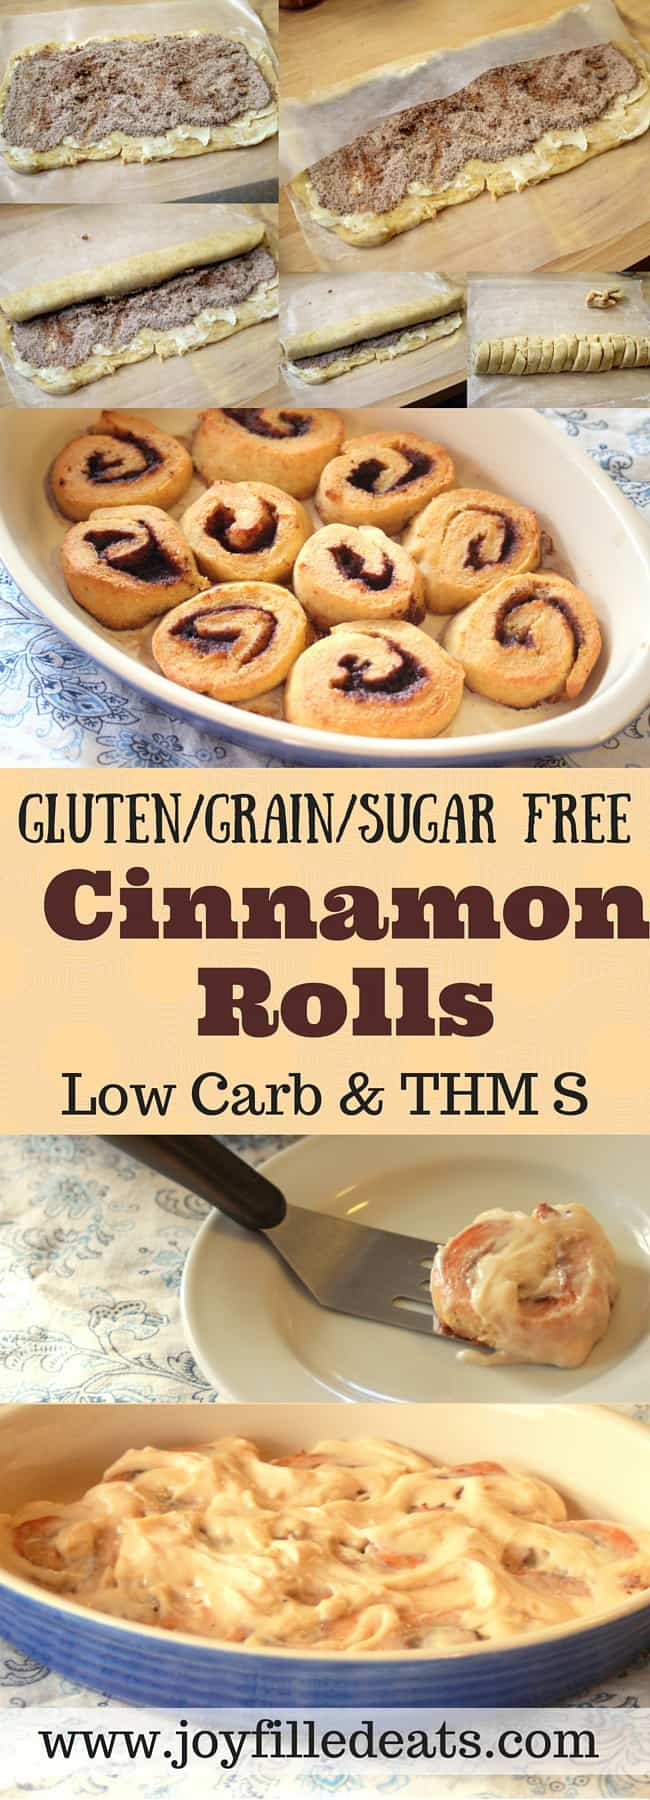 Gluten Free and Low Carb Cinnamon Rolls - These cinnamon rolls are perfect for lazy Sunday mornings. They have all the flavor without any sugar or grains. They are low carb and a THM S.